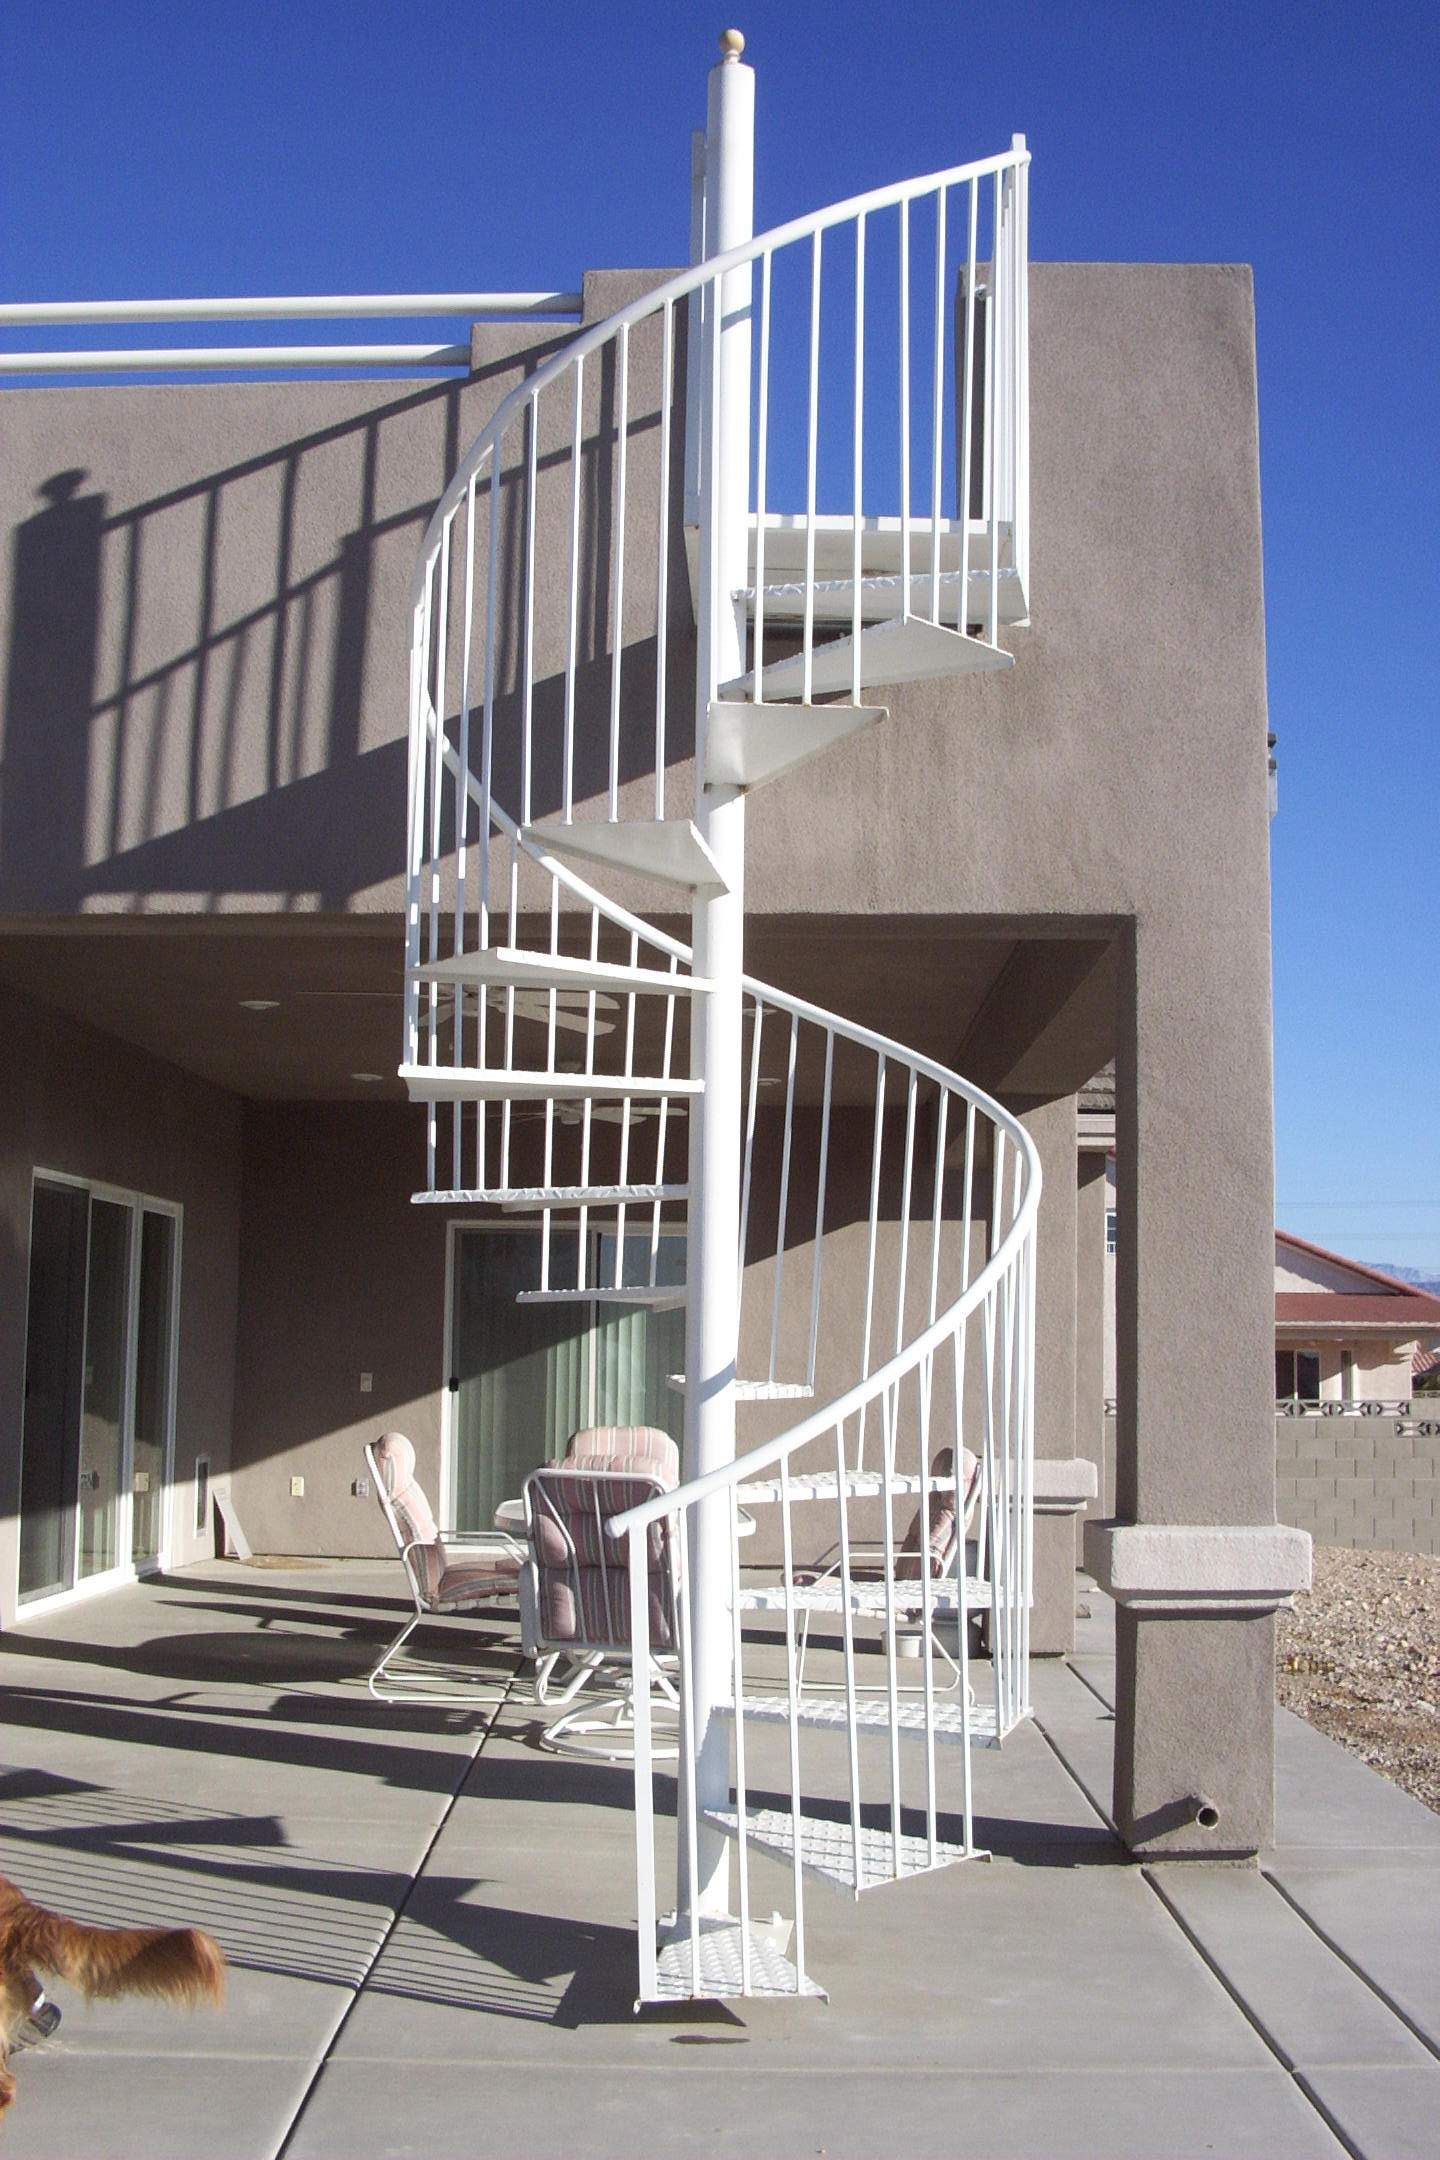 Spiral Staircase Spiral Staircases Las Vegas Wrought Iron   Iron Works Spiral Stairs   Stair Railing   Stair Case   Stair Treads   Handrail   Wrought Iron